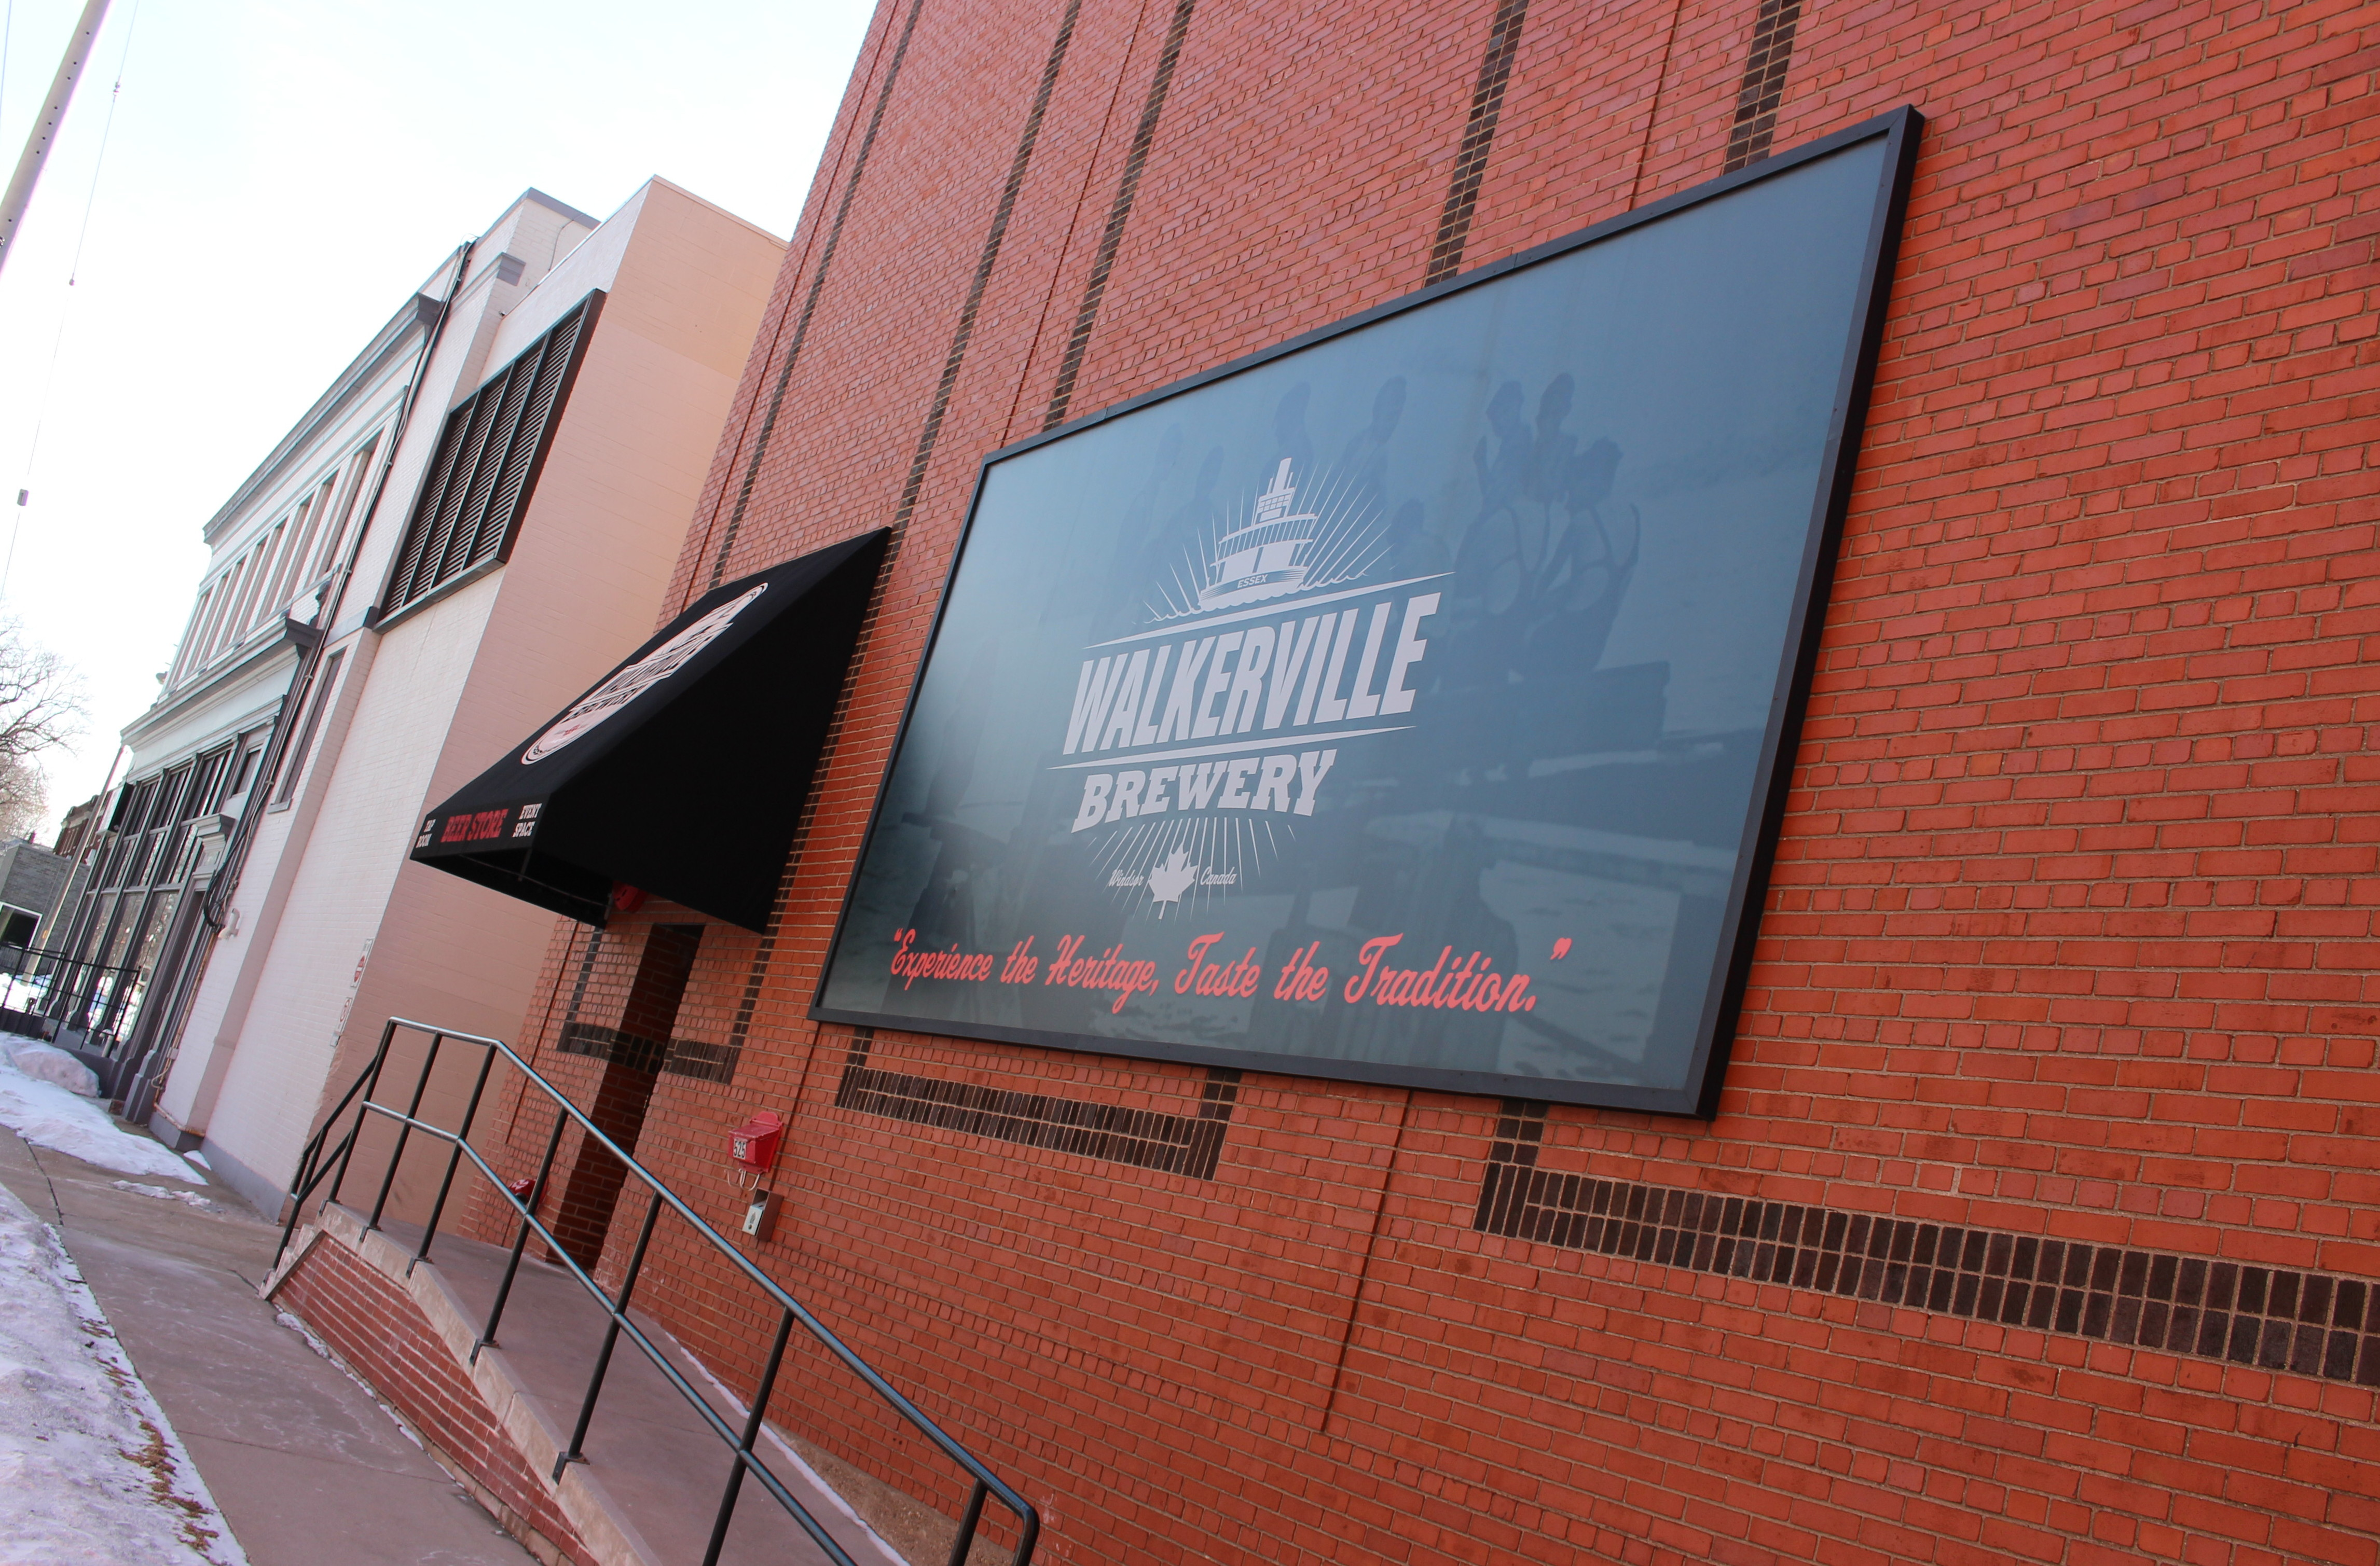 Walkerville Brewery on Argyle St. in Windsor, February 2015. (Photo by Mike Vlasveld)